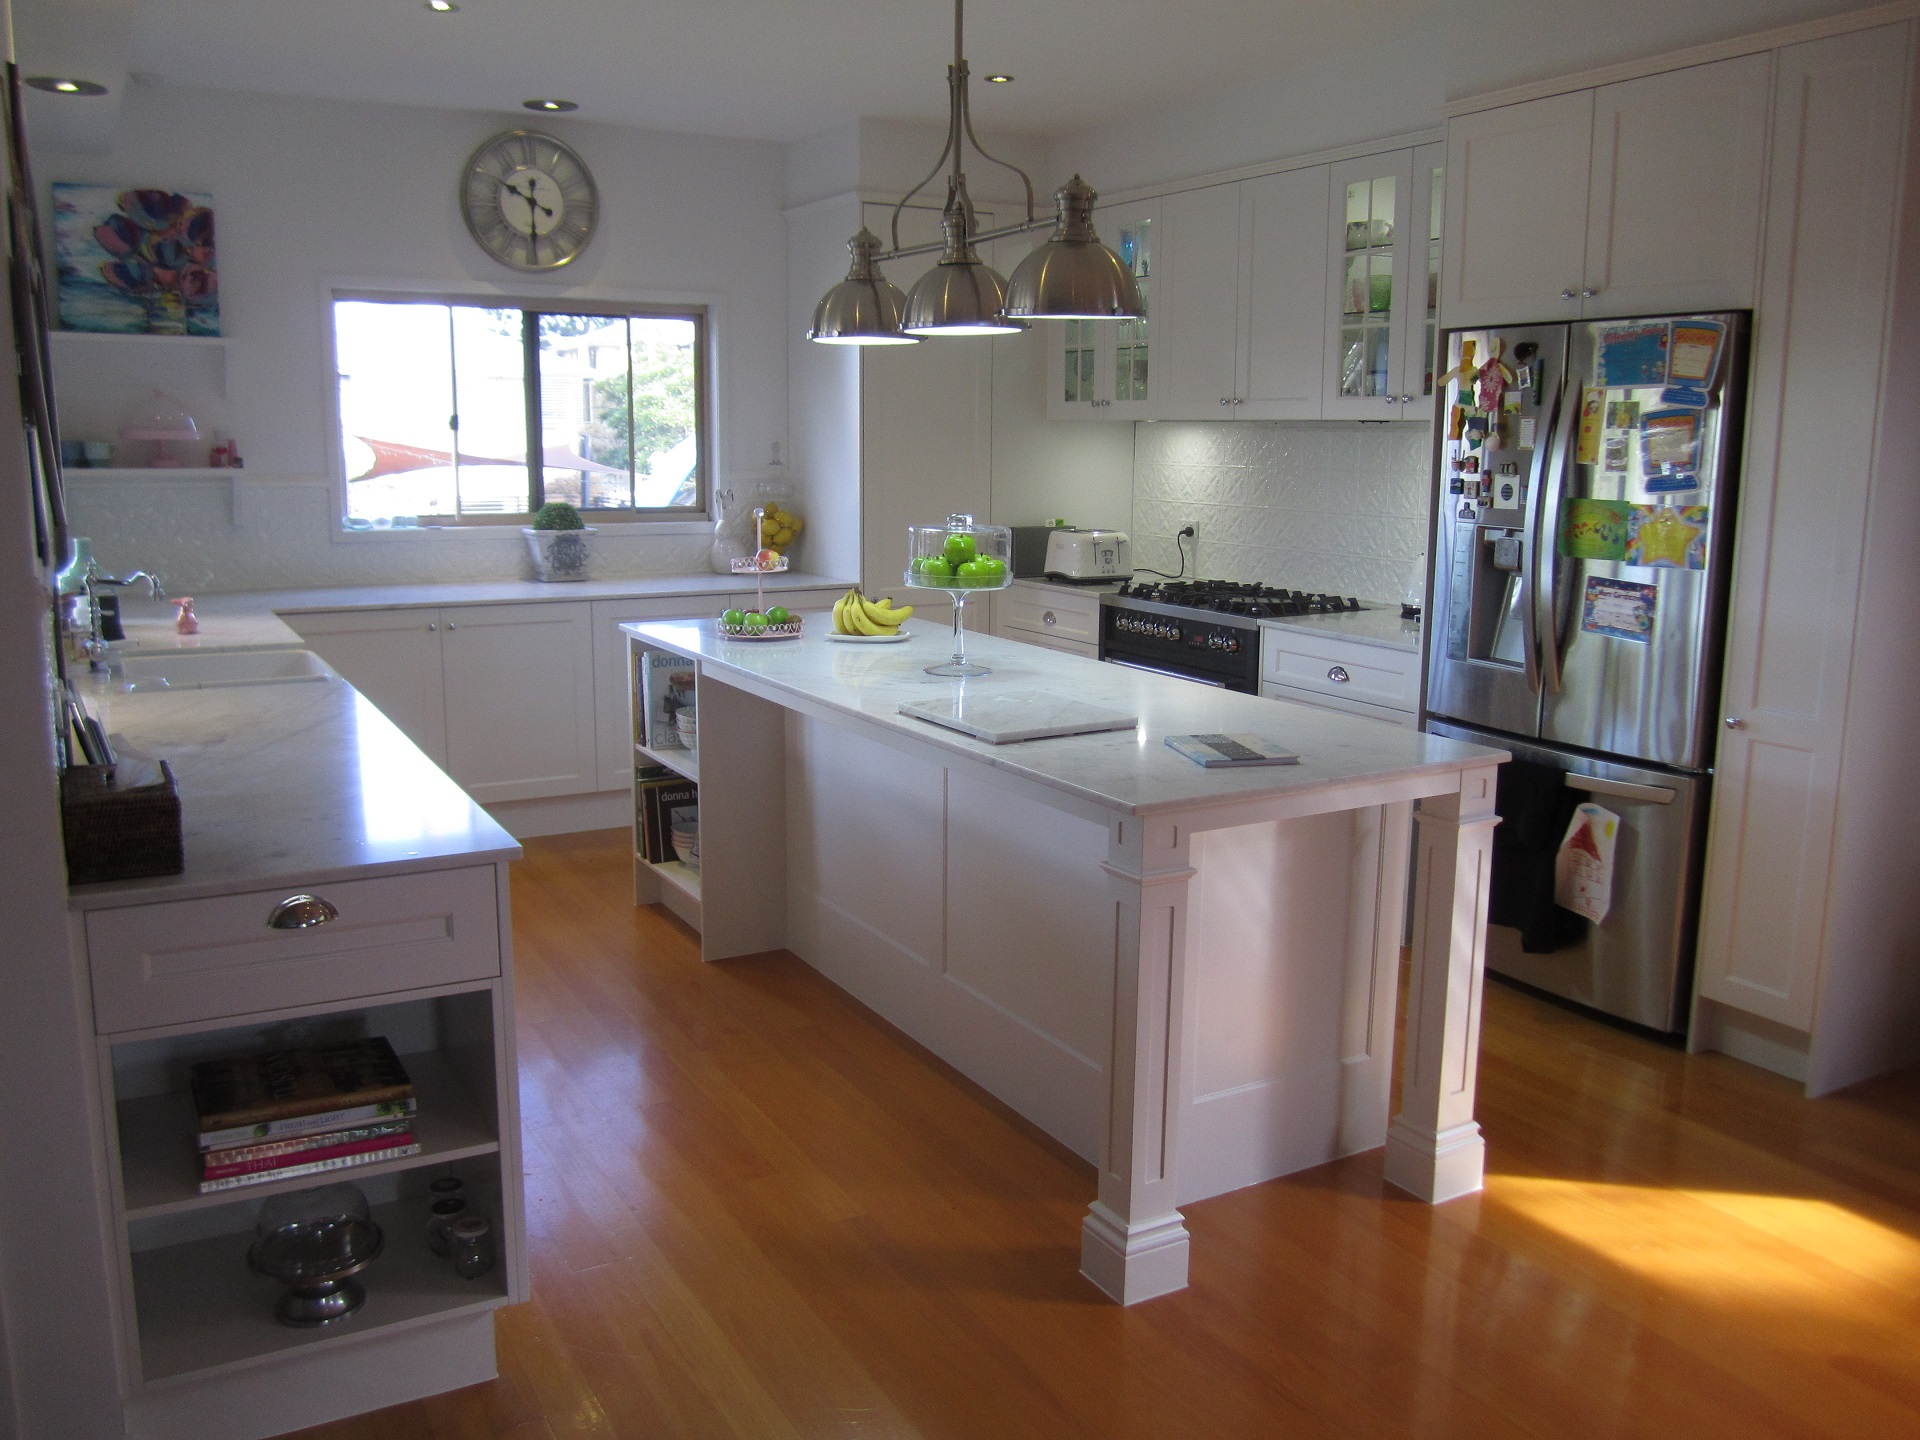 Uncategorized Brisbane Kitchen Design brisbane kitchen design garate graceville traditional kitchenrenovation 8 jpg 8